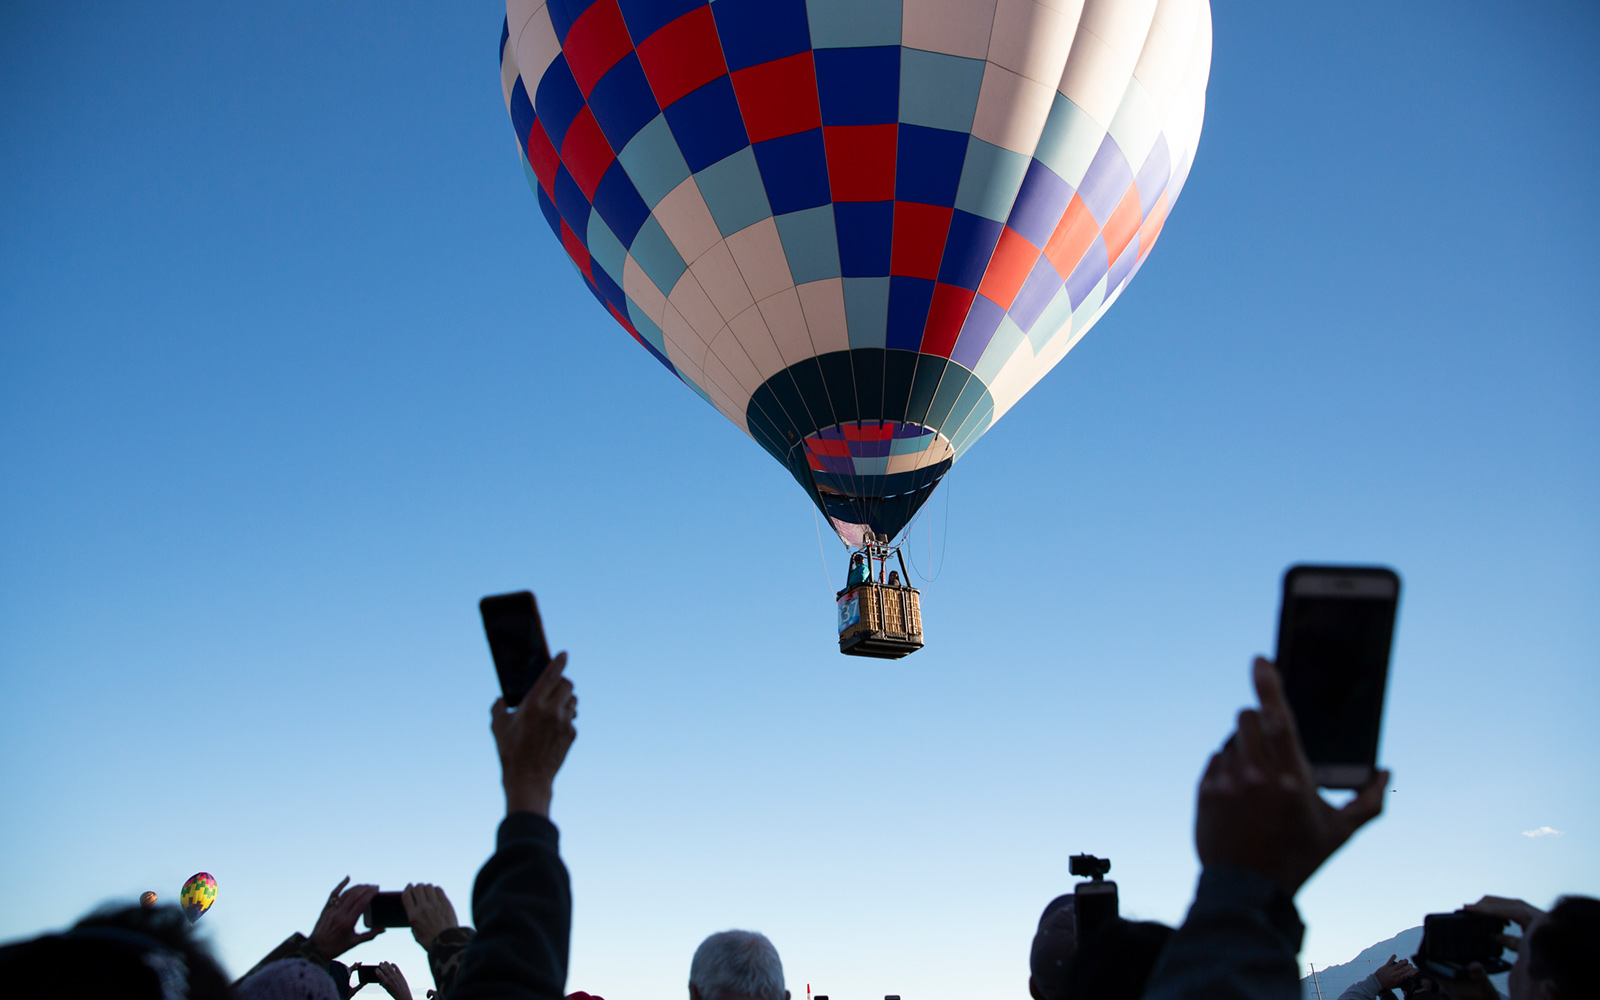 Spectators at the Albuquerque International Balloon Fiesta